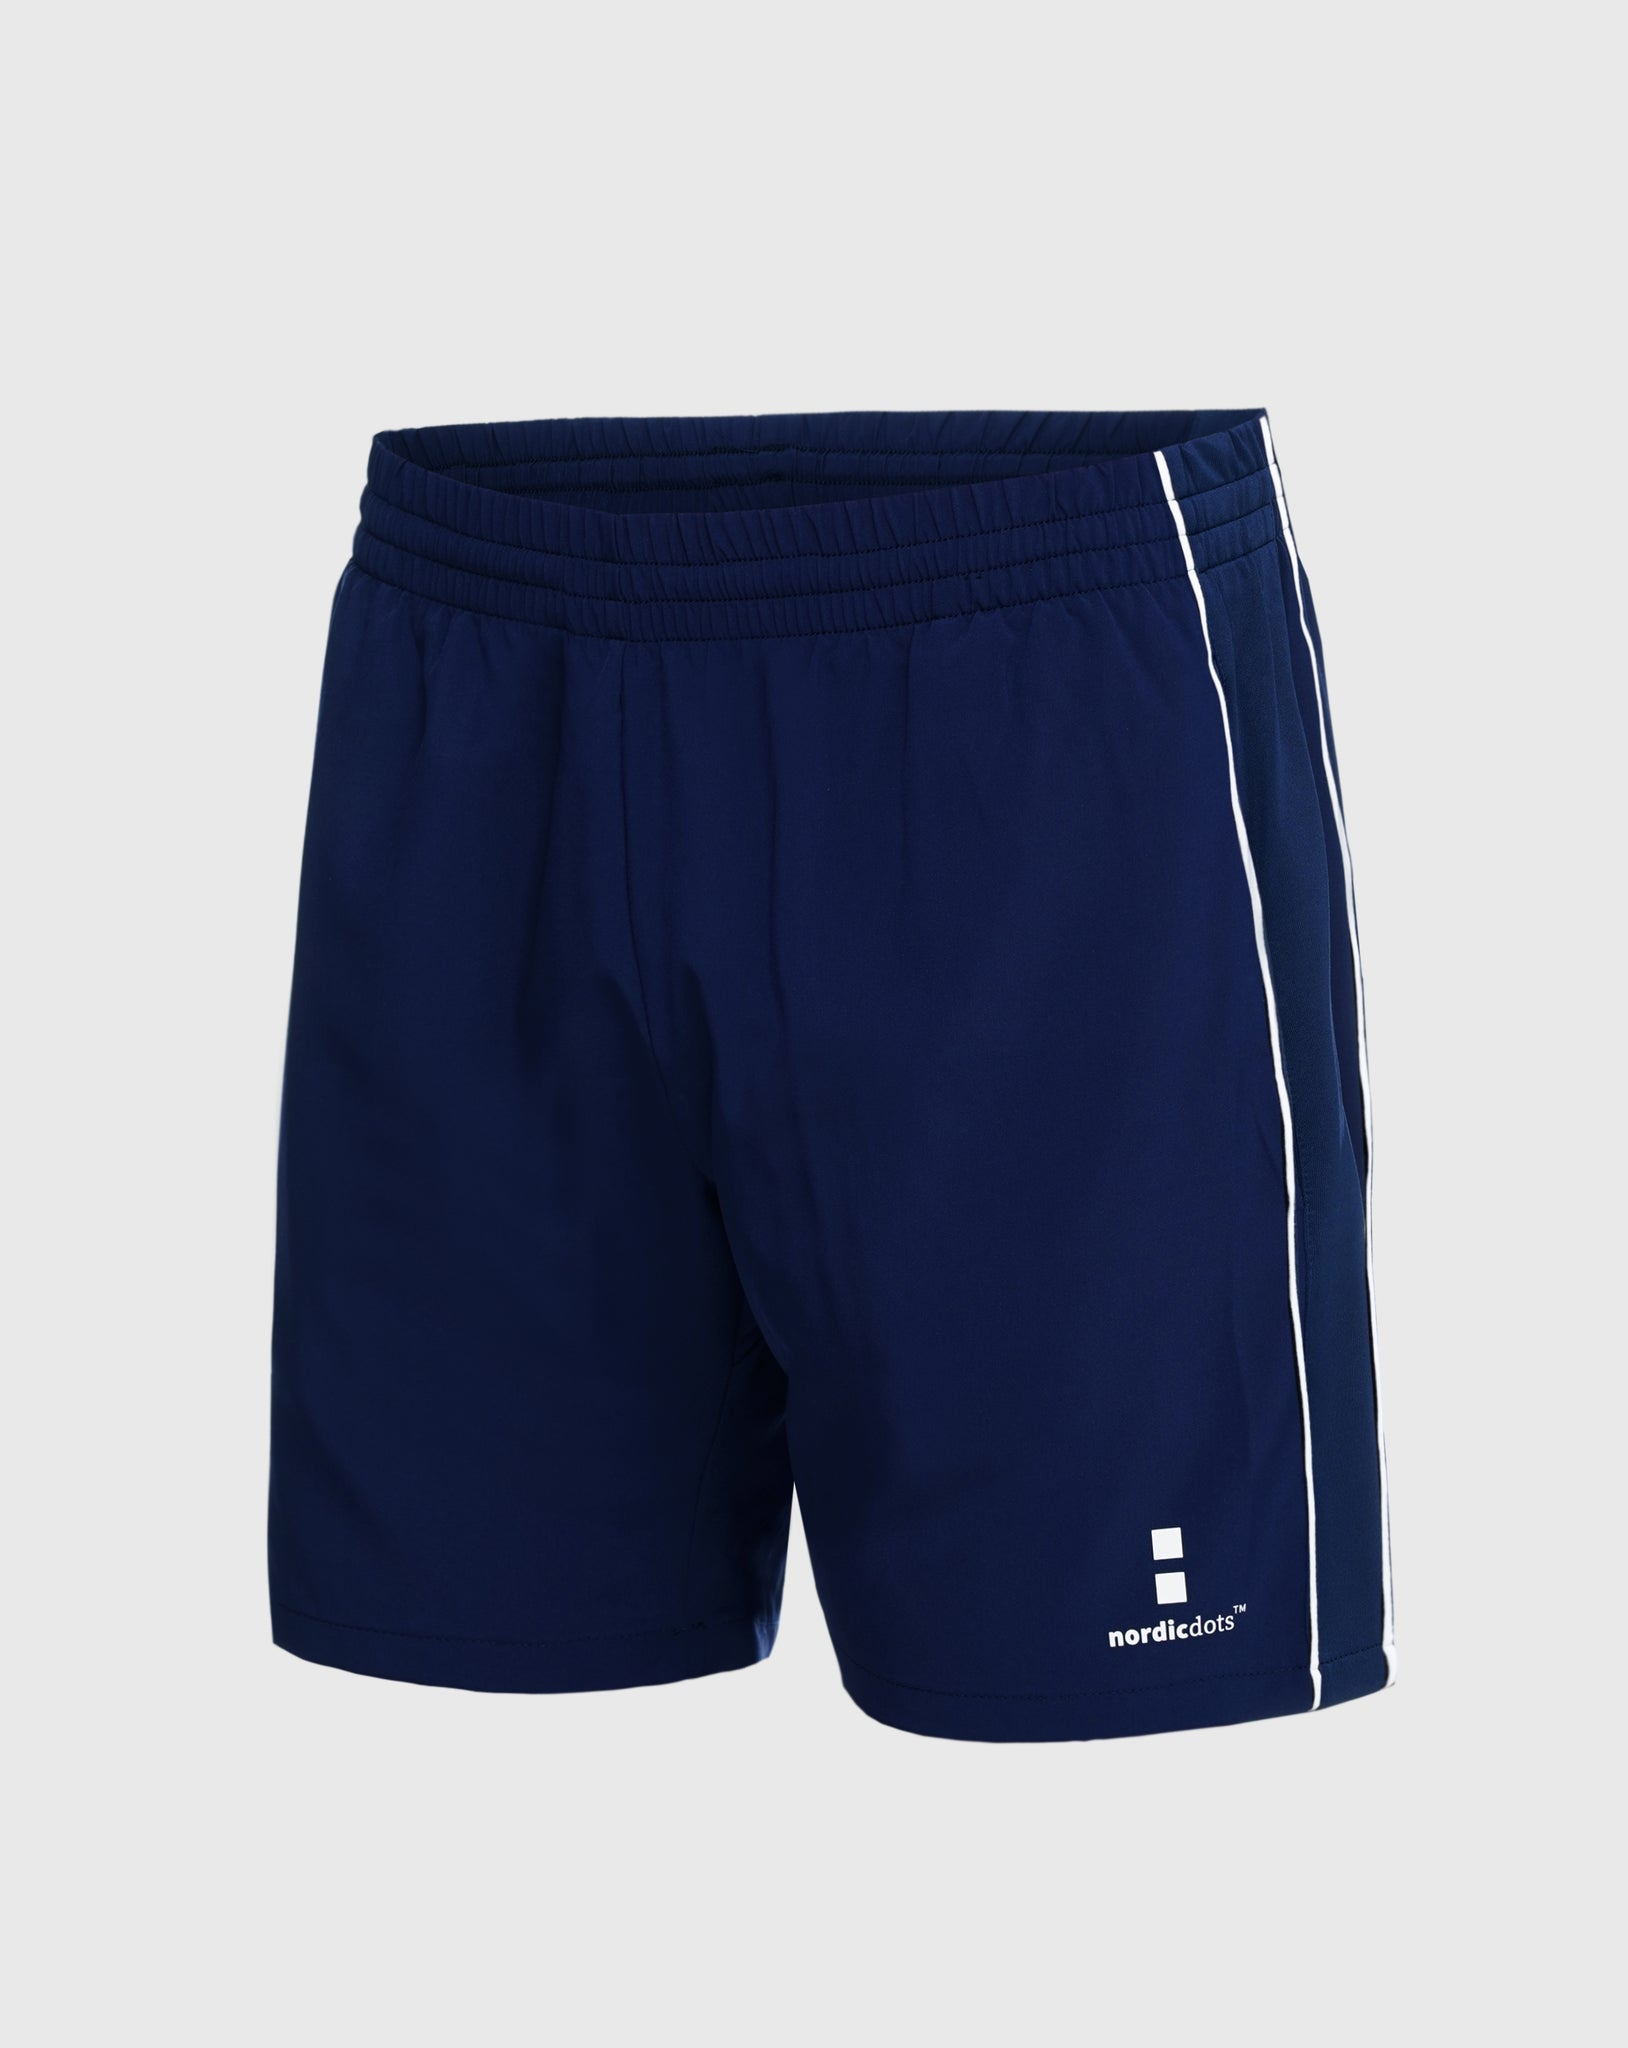 nordicdots tennis padel shorts navy